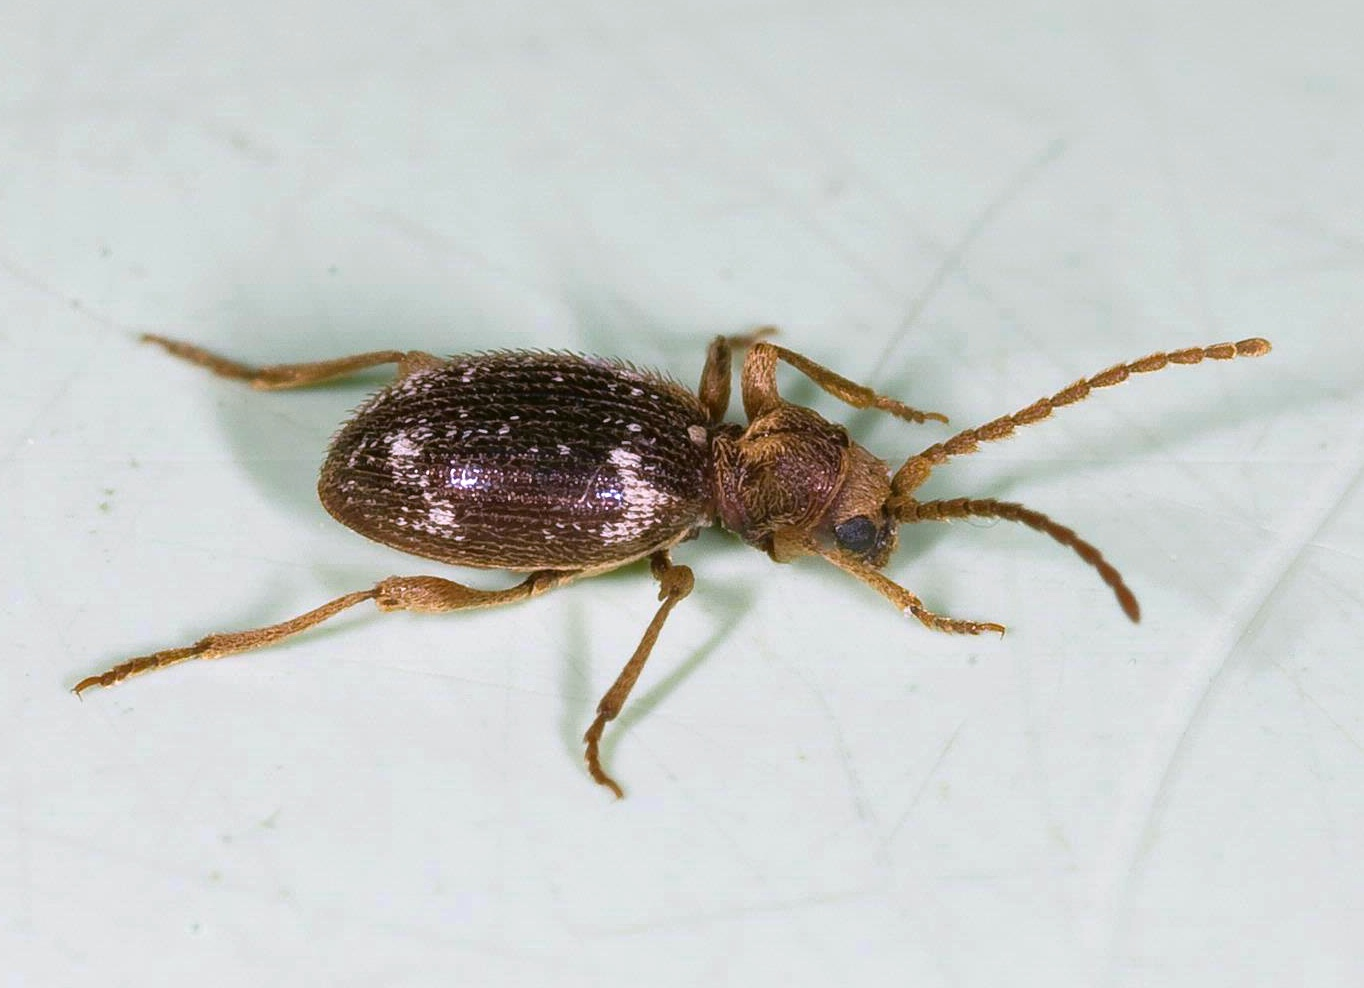 Spider Beetle - Image By orkin